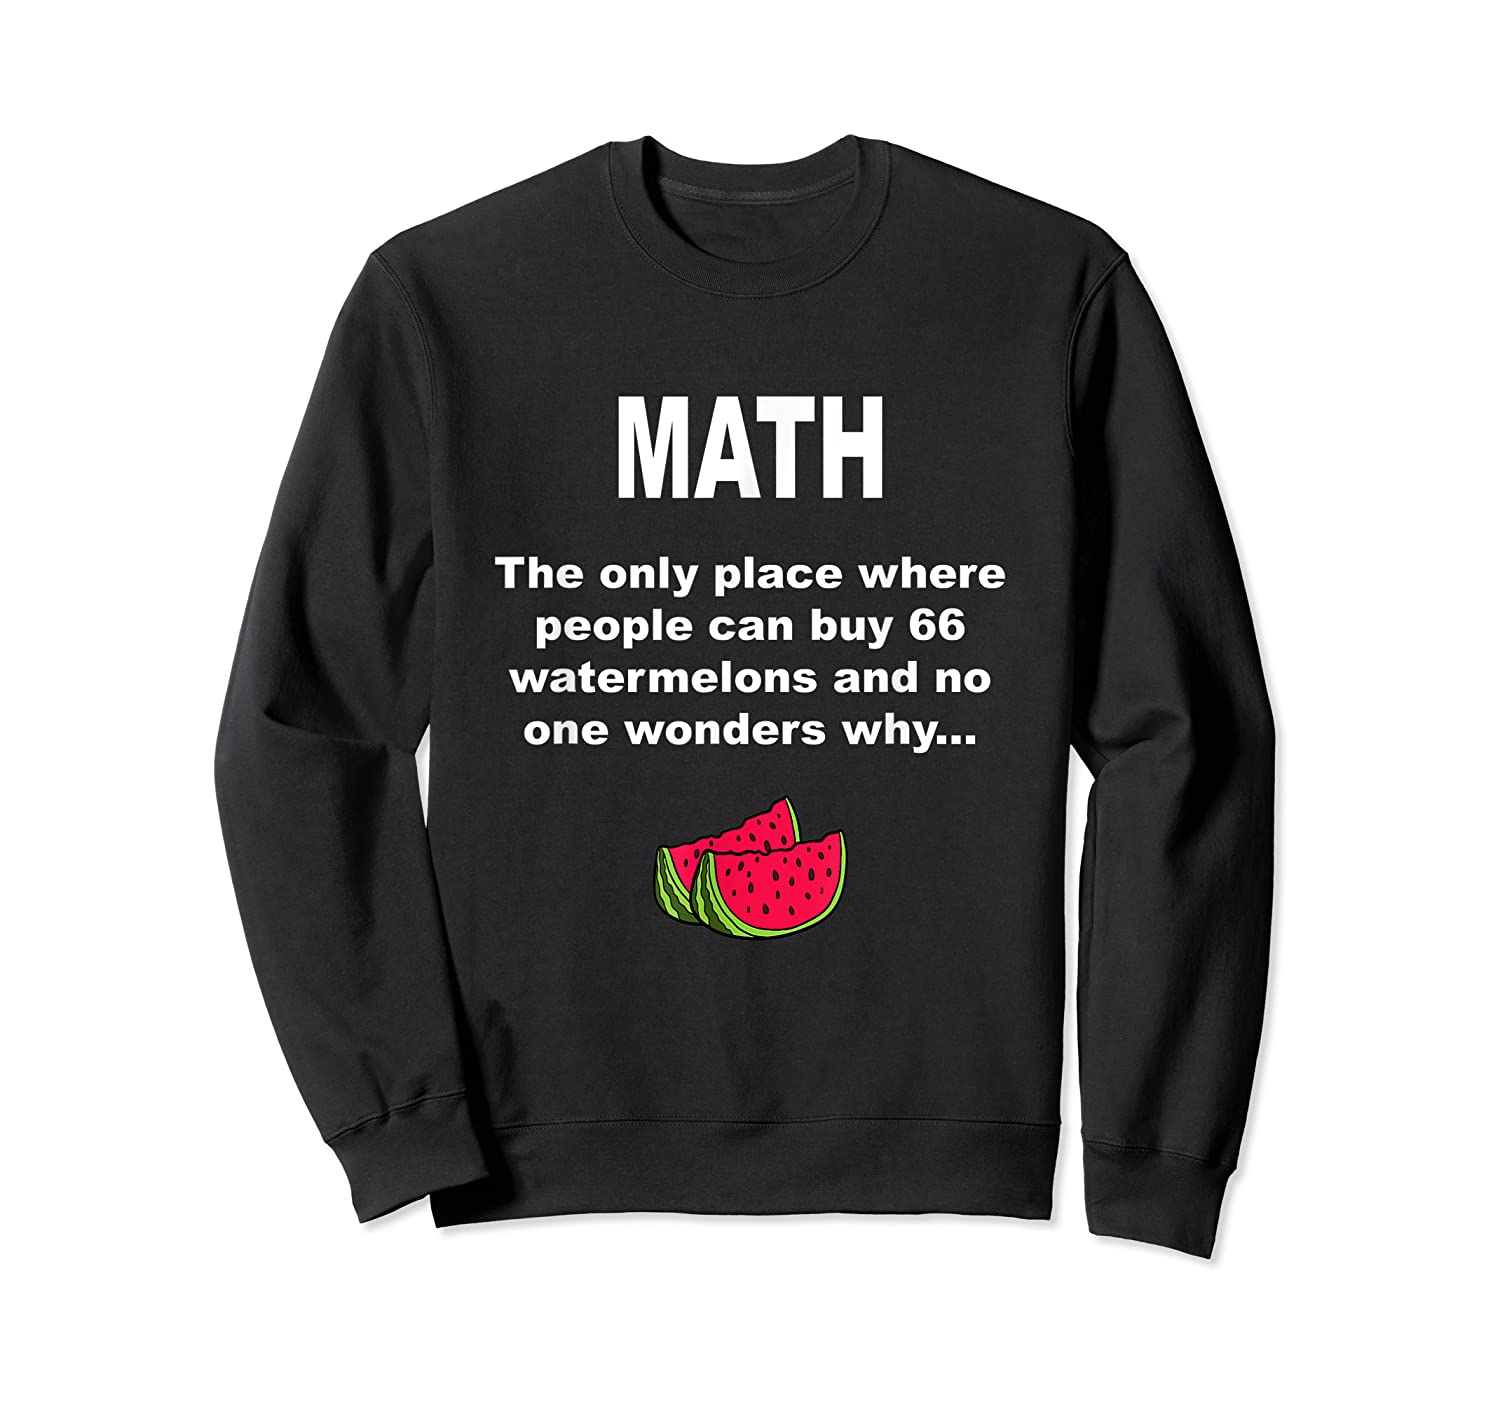 Funny Watermelons Math Gift With Humor For Tea Shirts Crewneck Sweater